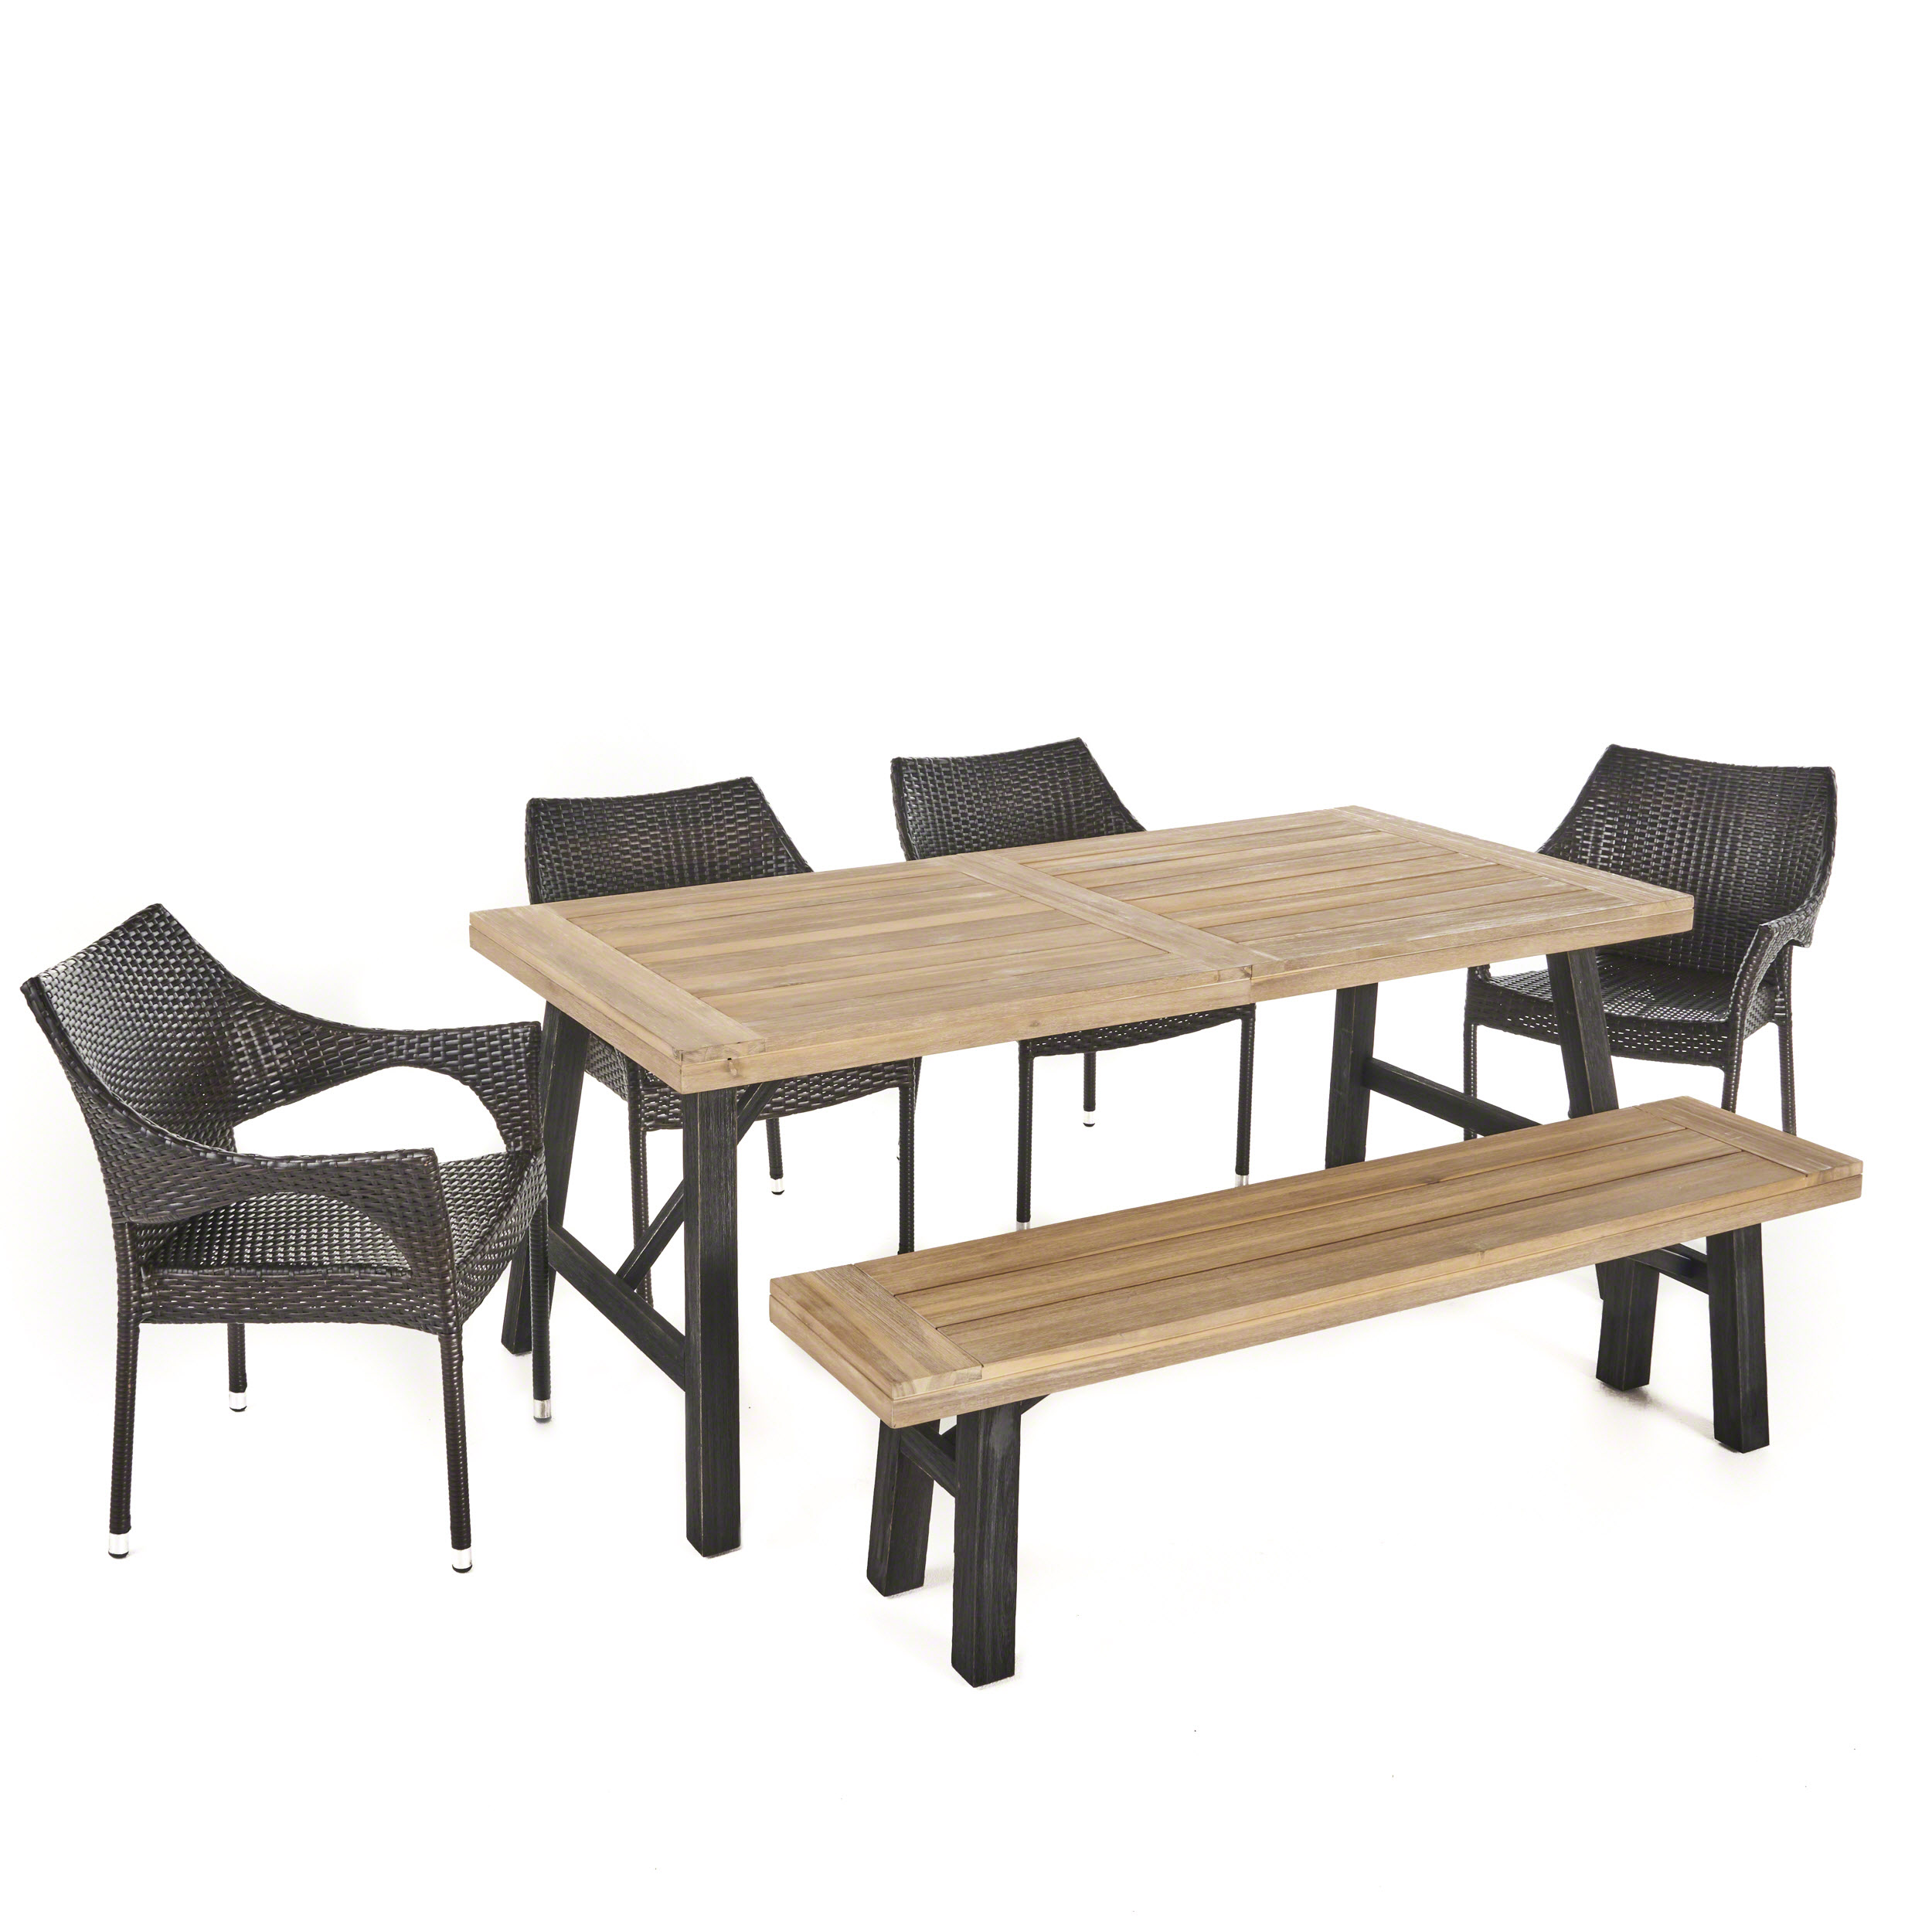 Secos Outdoor 6 Piece Acacia Wood Dining Set with Multibrown Wicker Stacking Chairs, Brushed Grey